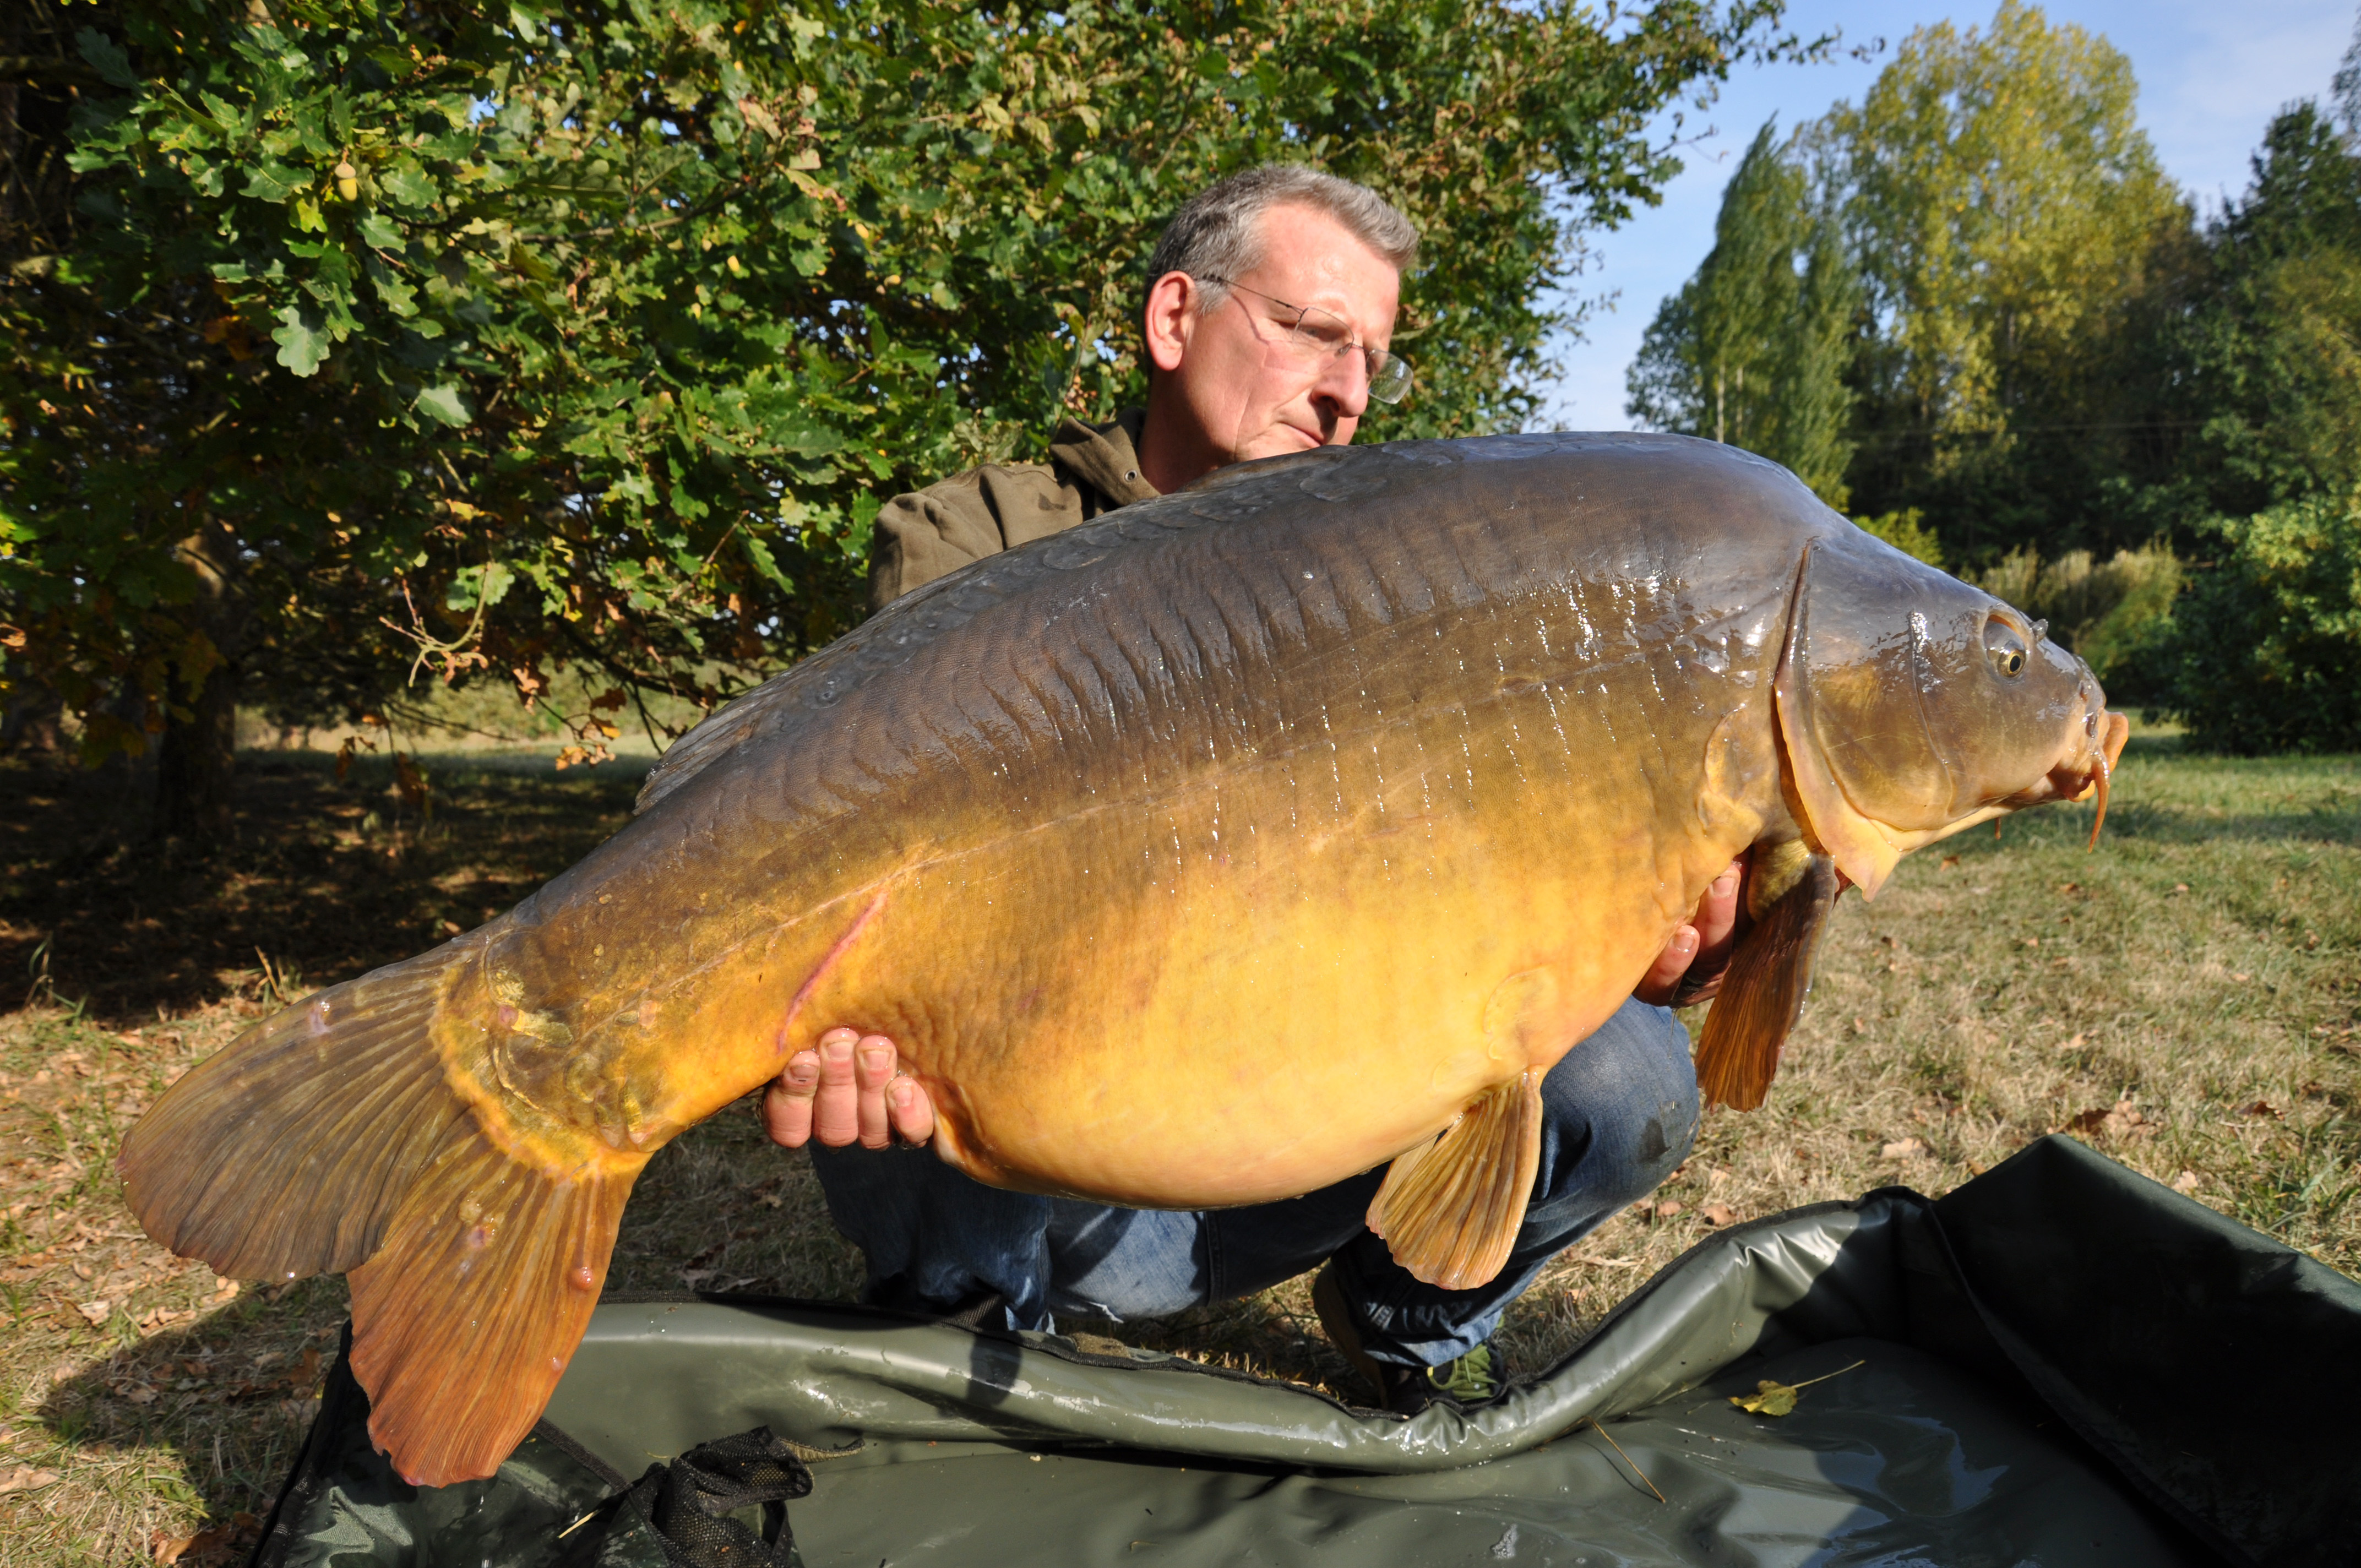 http://starbaits.com/fichiers/images/team/gallery/LEBRETON_Jean-Marc/jml_24,5.jpg